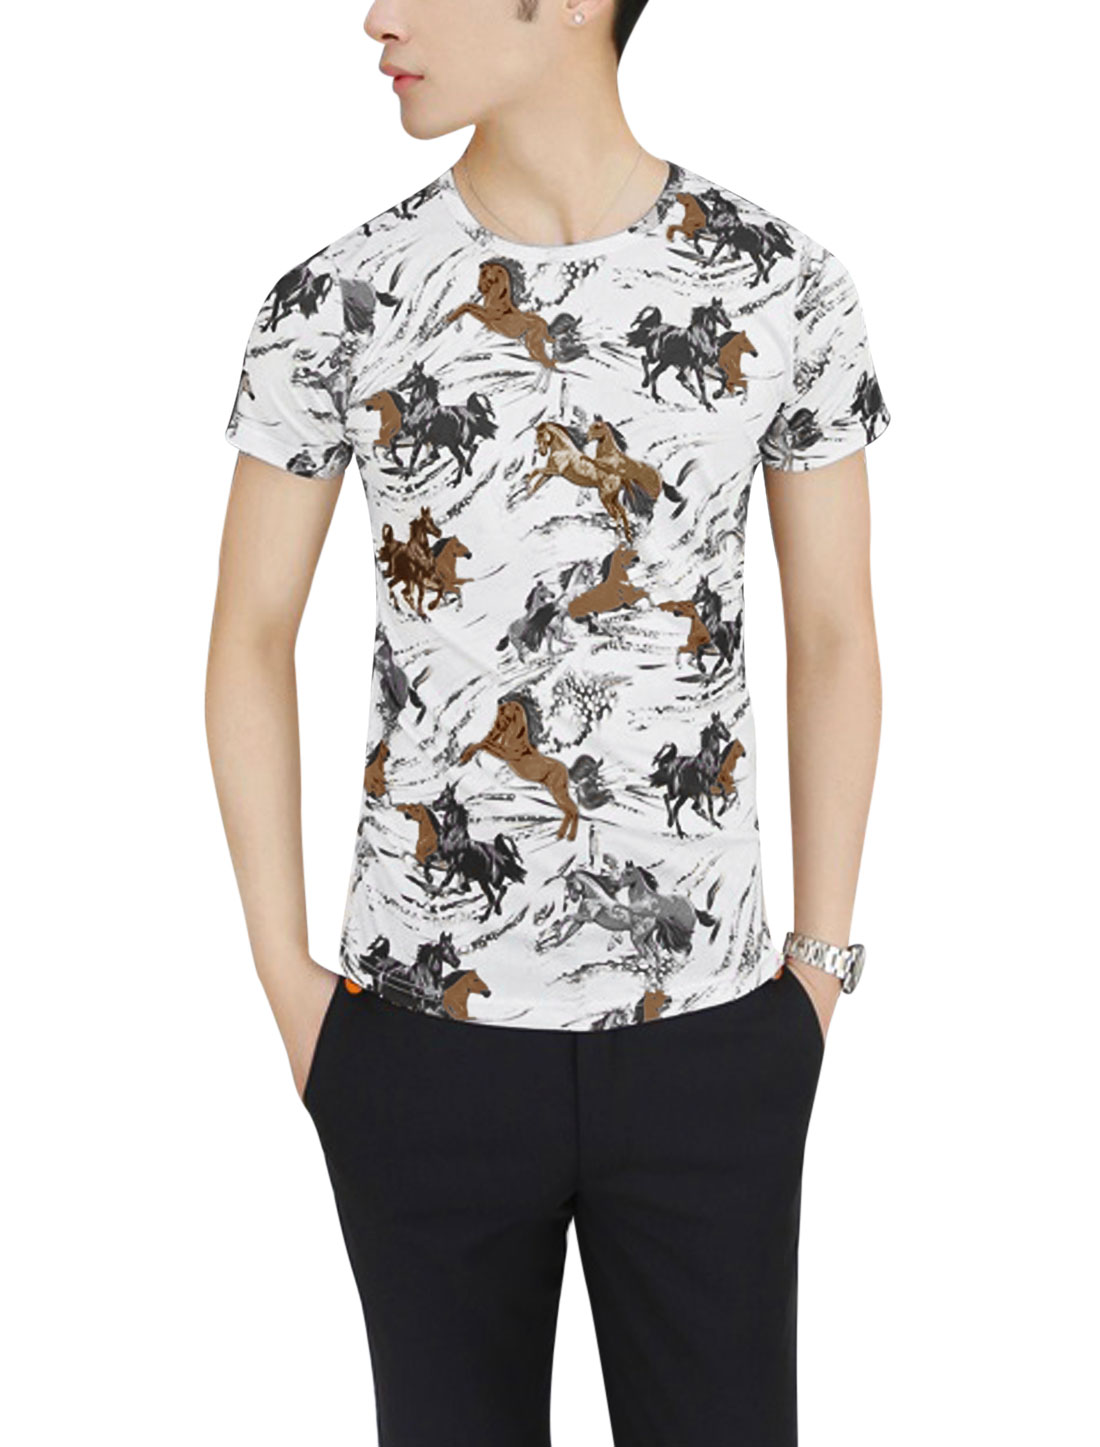 Men Summer Short Sleeve Horse Prints T-Shirt Gray Sand S